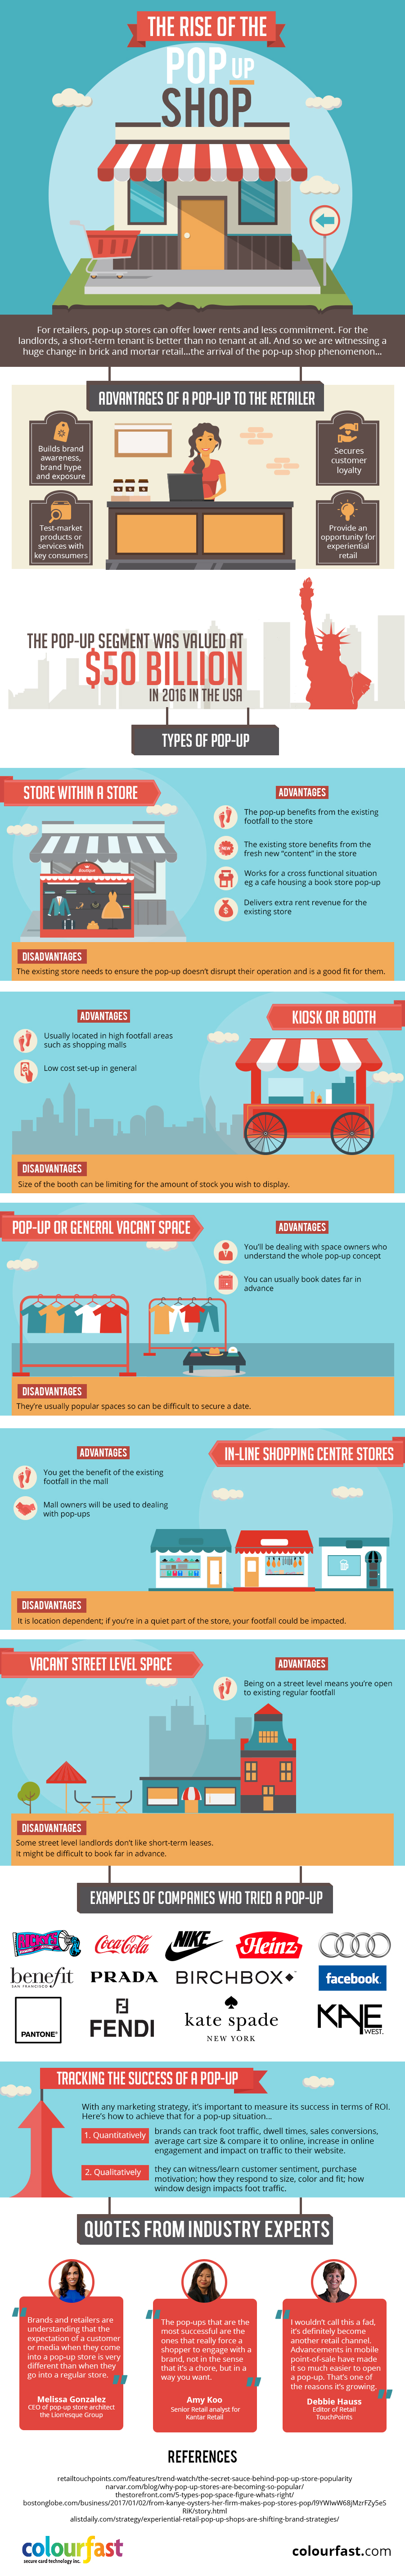 The Rise of the Pop Up Store-–Infographic.jpg